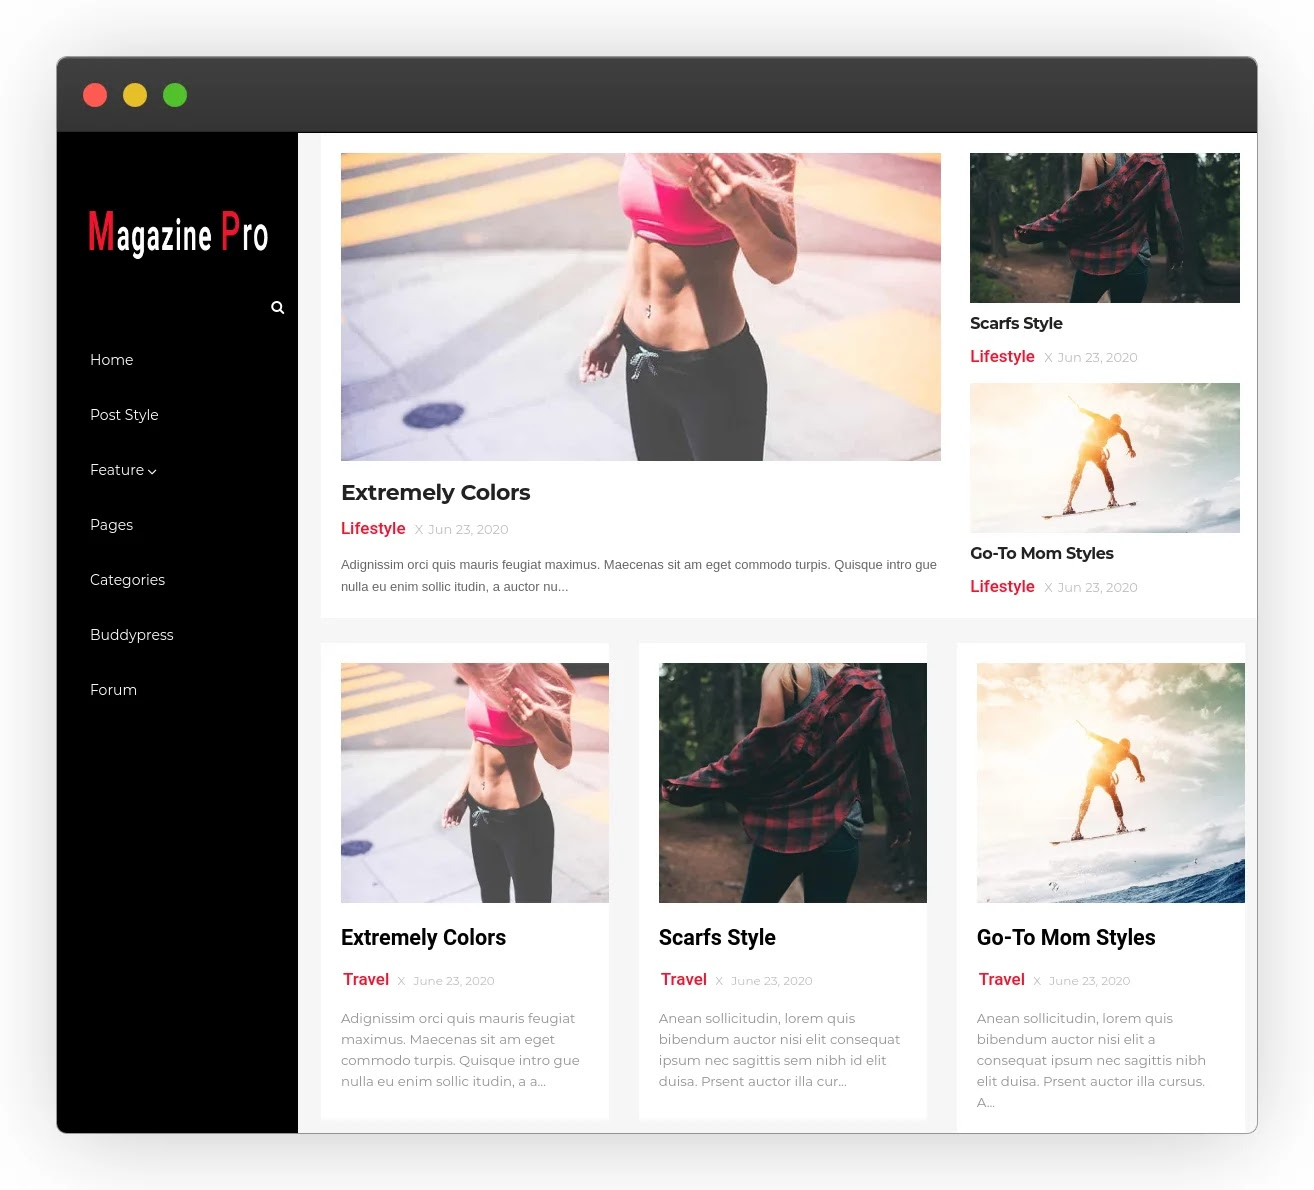 Magazine Pro - High-Quality Professional Blogger Template 2020